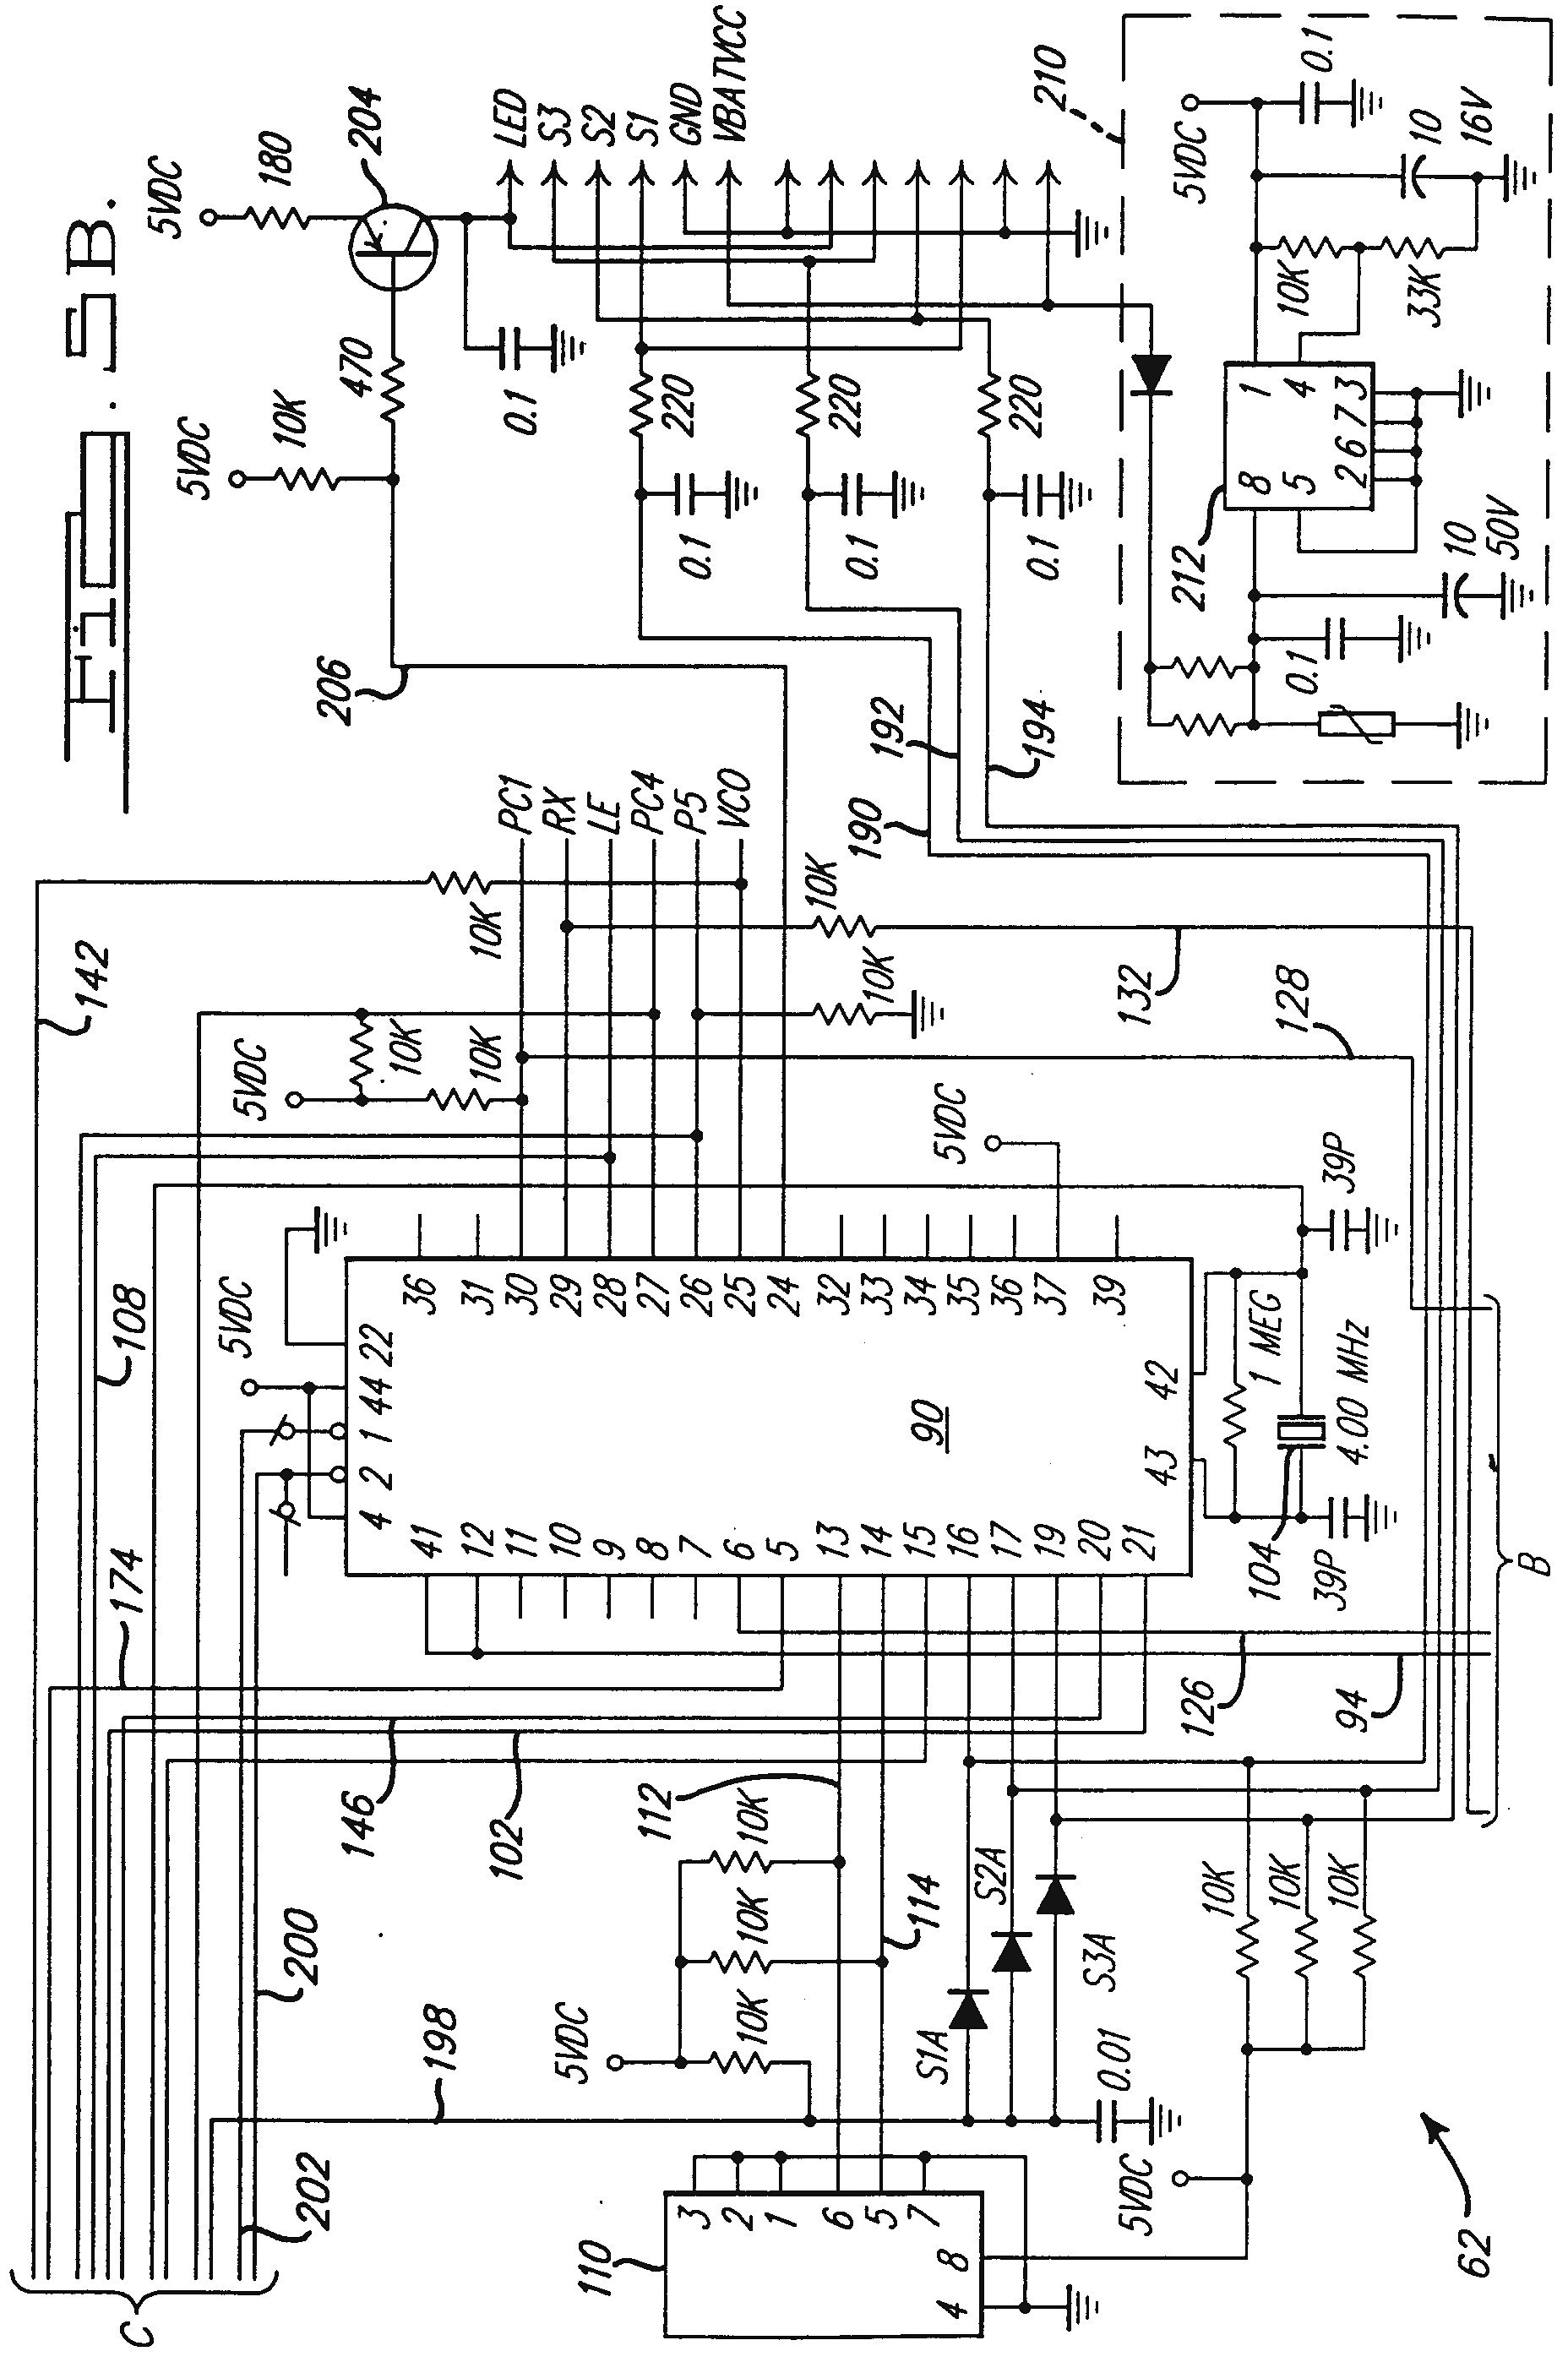 genie garage door opener wiring diagram Collection-Electrical Wiring Diagram for Garage New Genie Garage Door Opener Wiring Diagram Awesome Charming Lift Master 15-m